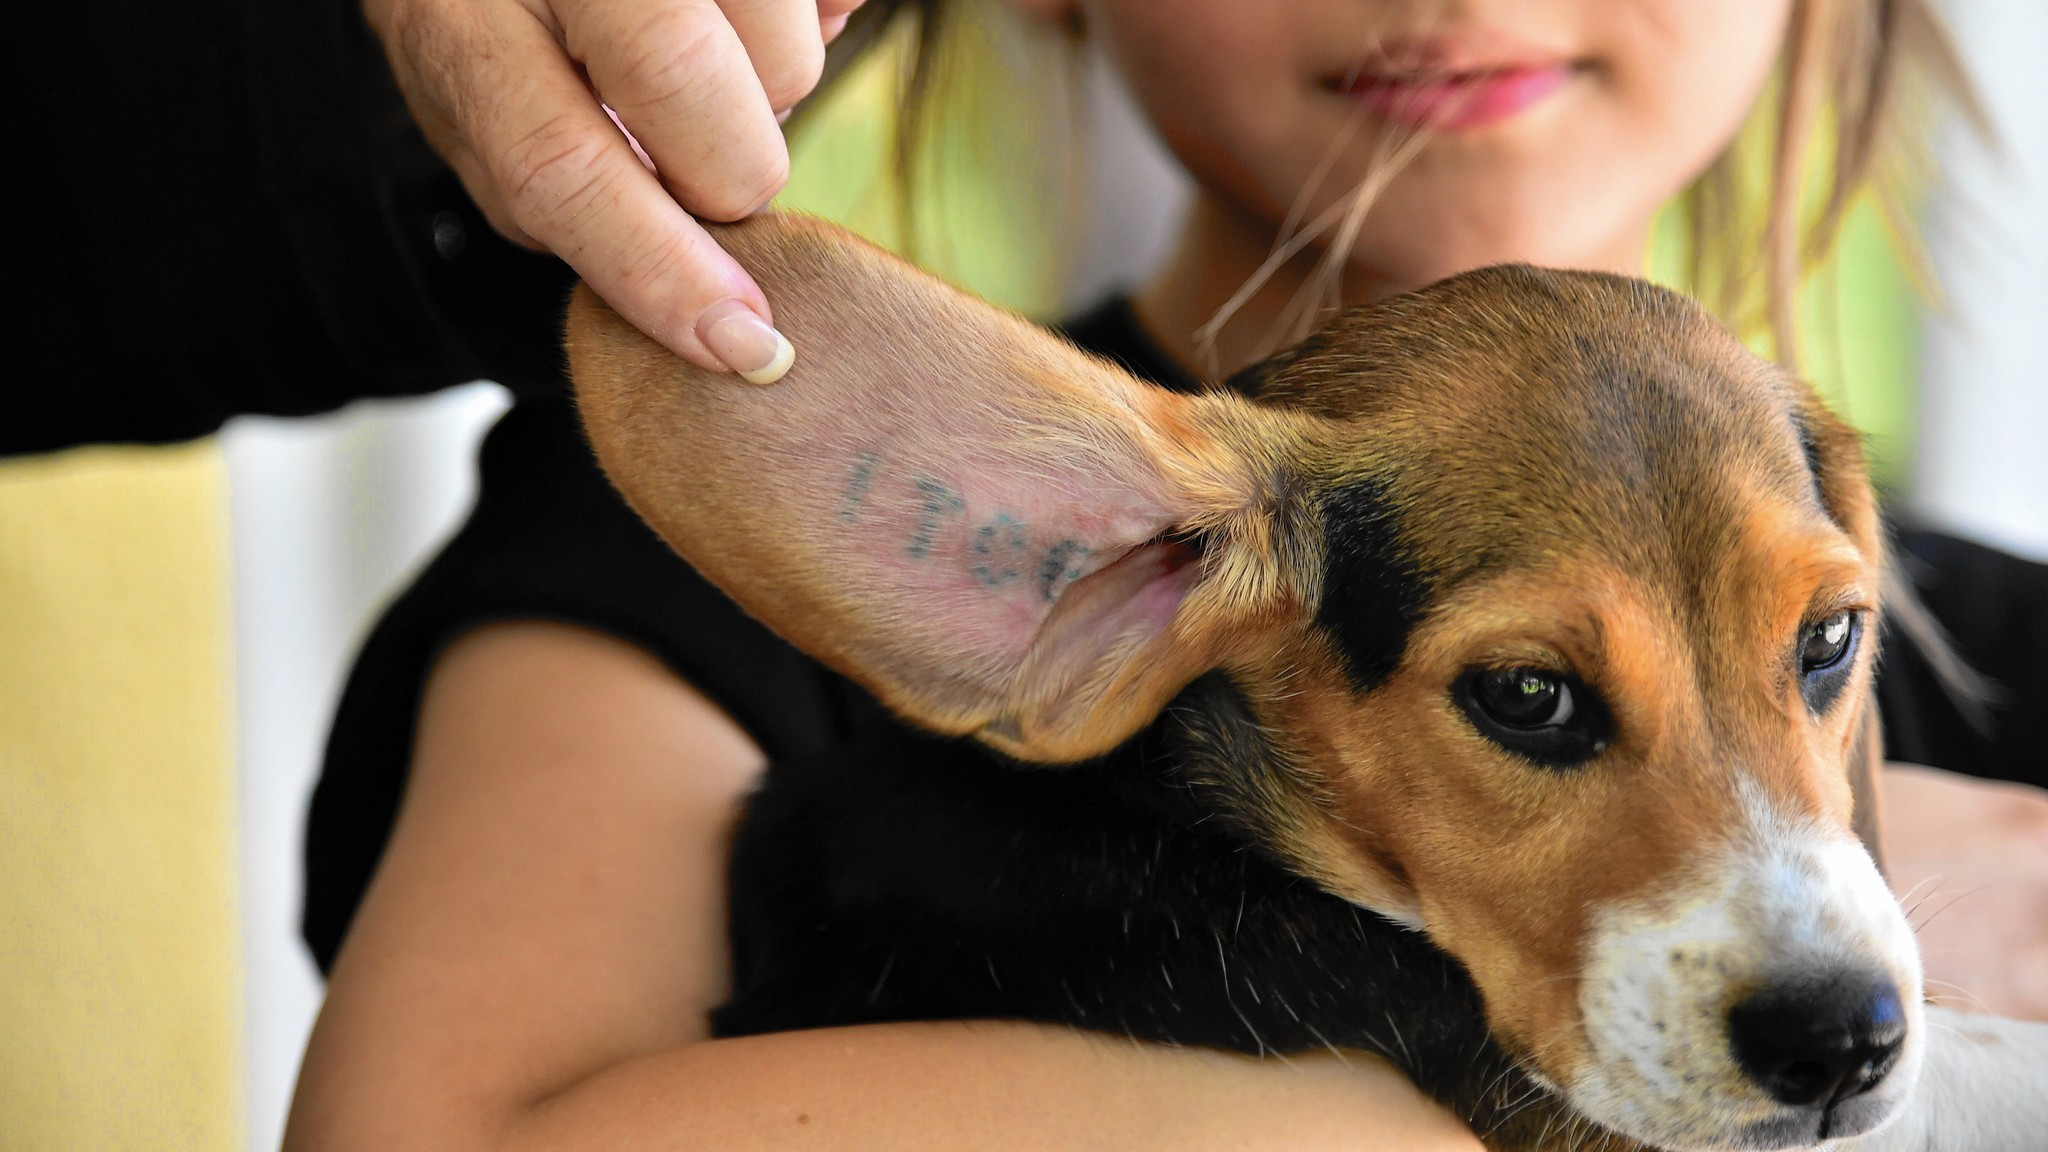 has questions to answer about beagle experiments   orlando sentinel